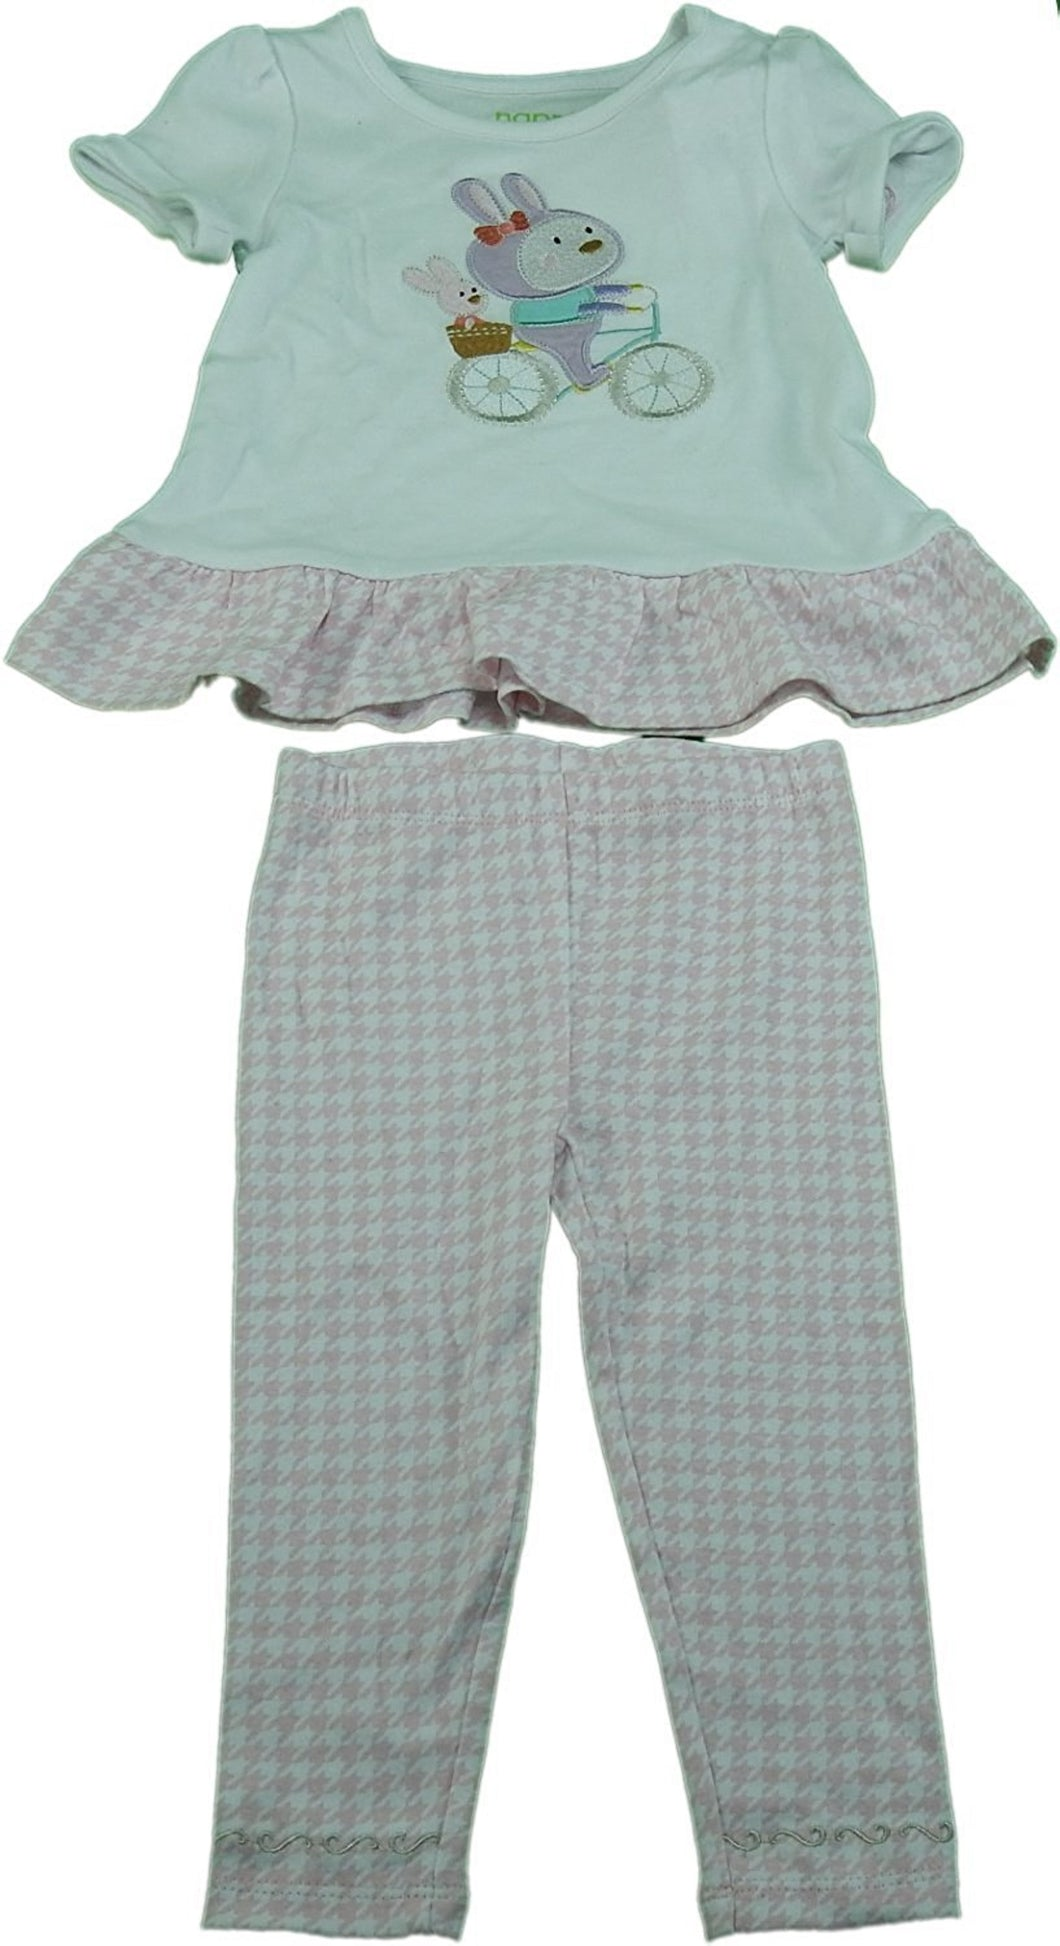 Happi by Dena Baby Girls 2-Piece Shirt & Pant Set, Pink/White/Multi Bunny